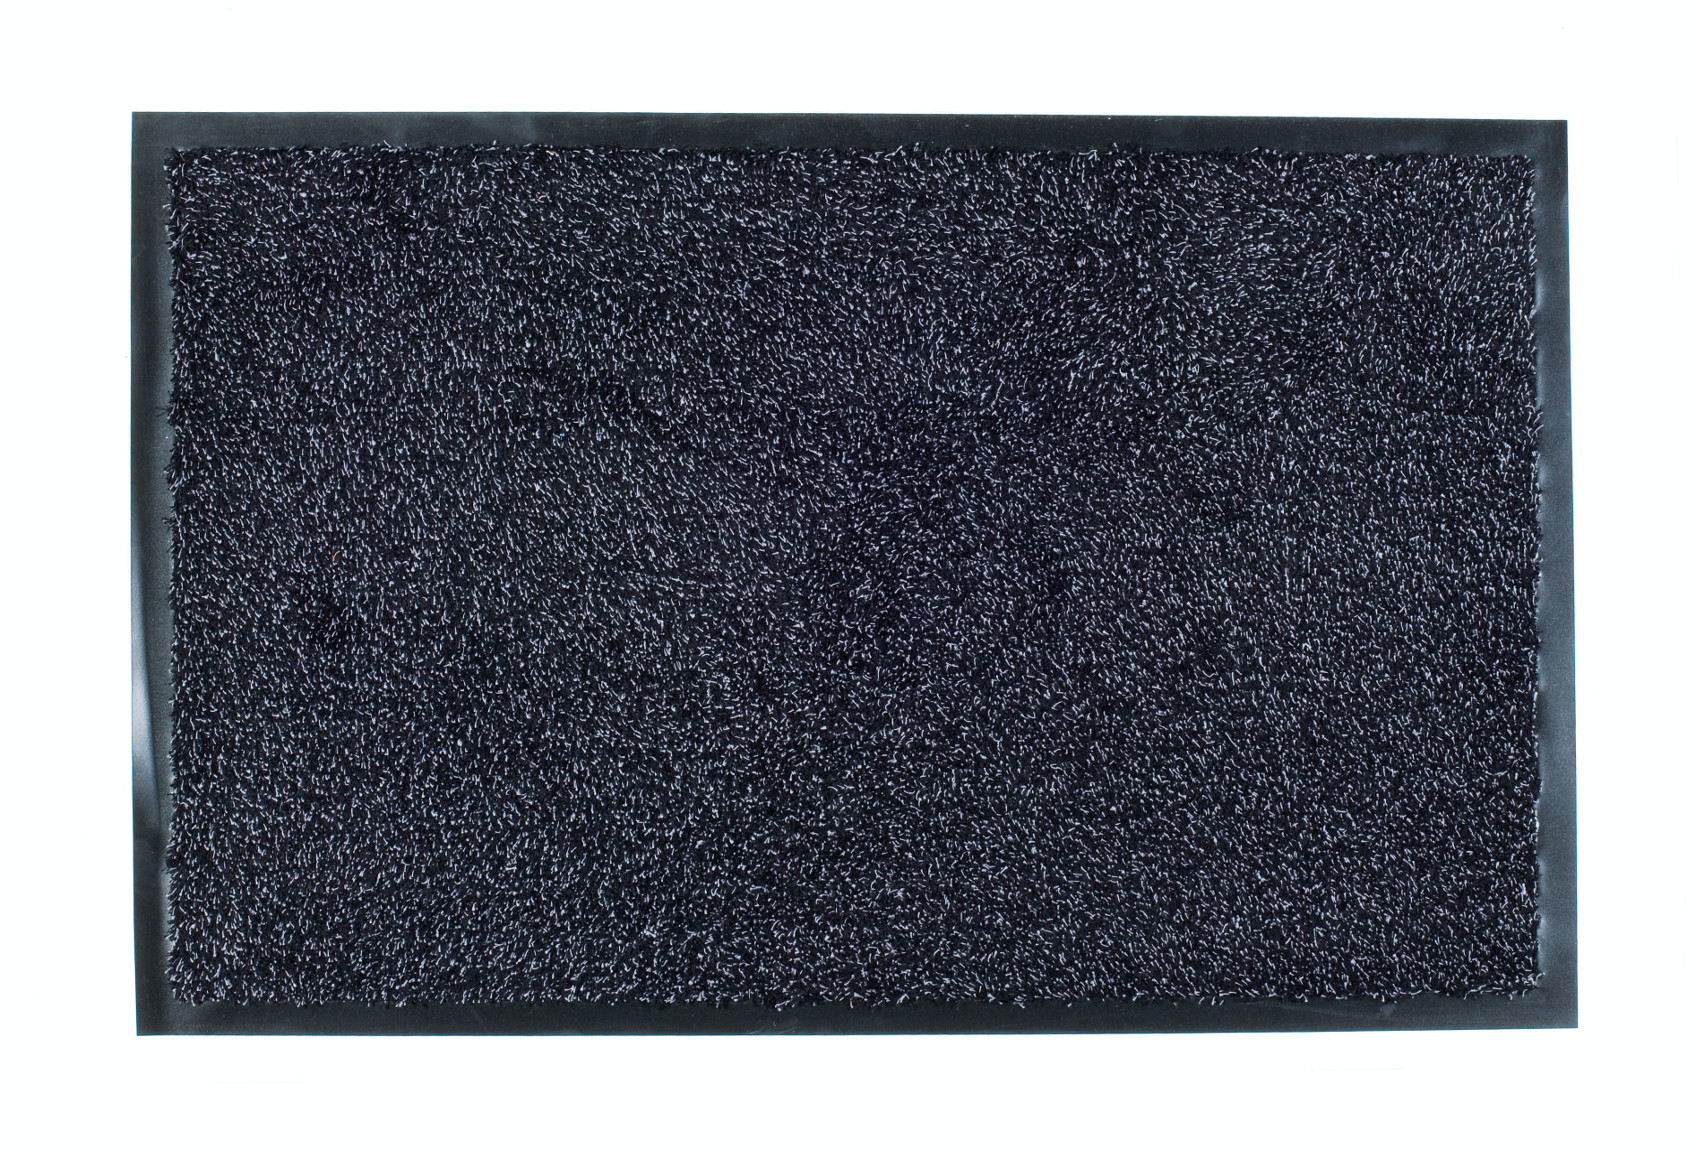 drainage etm flooring main pool slip mat safety antirutschmatte grey itm mats grip anti rubber aqua hygiene floor grau matting